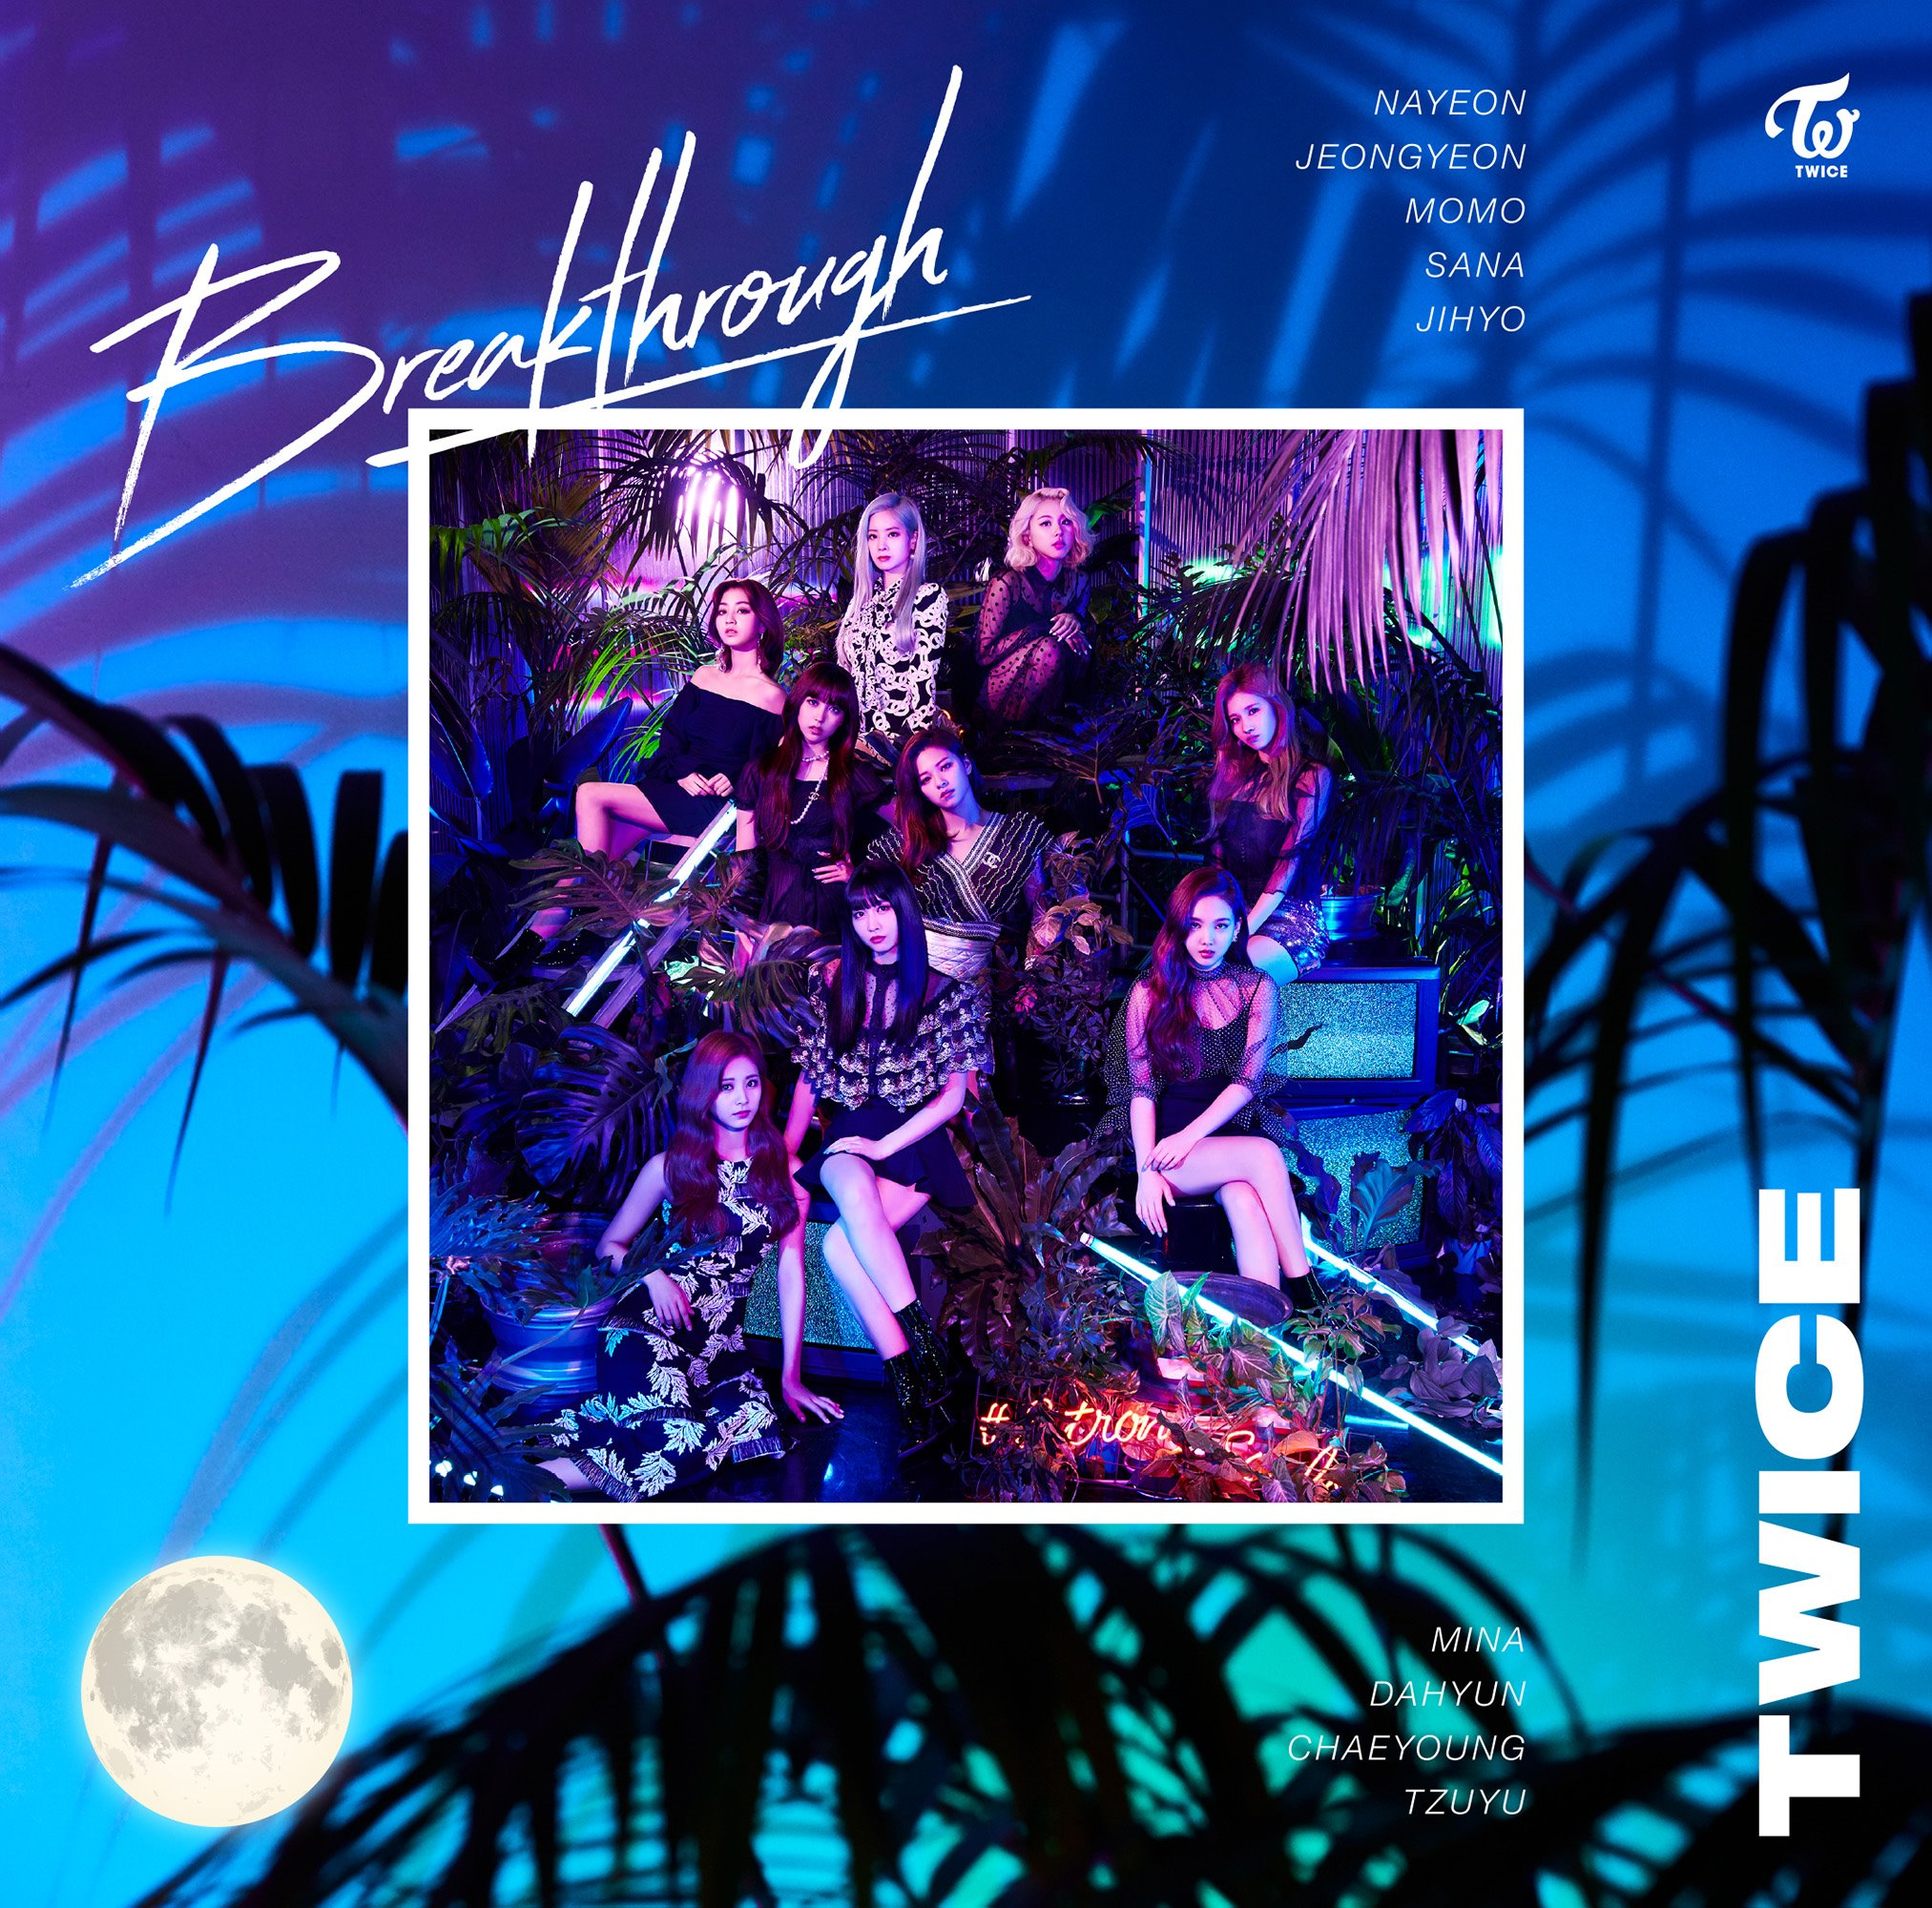 Twice Breakthrough Cover